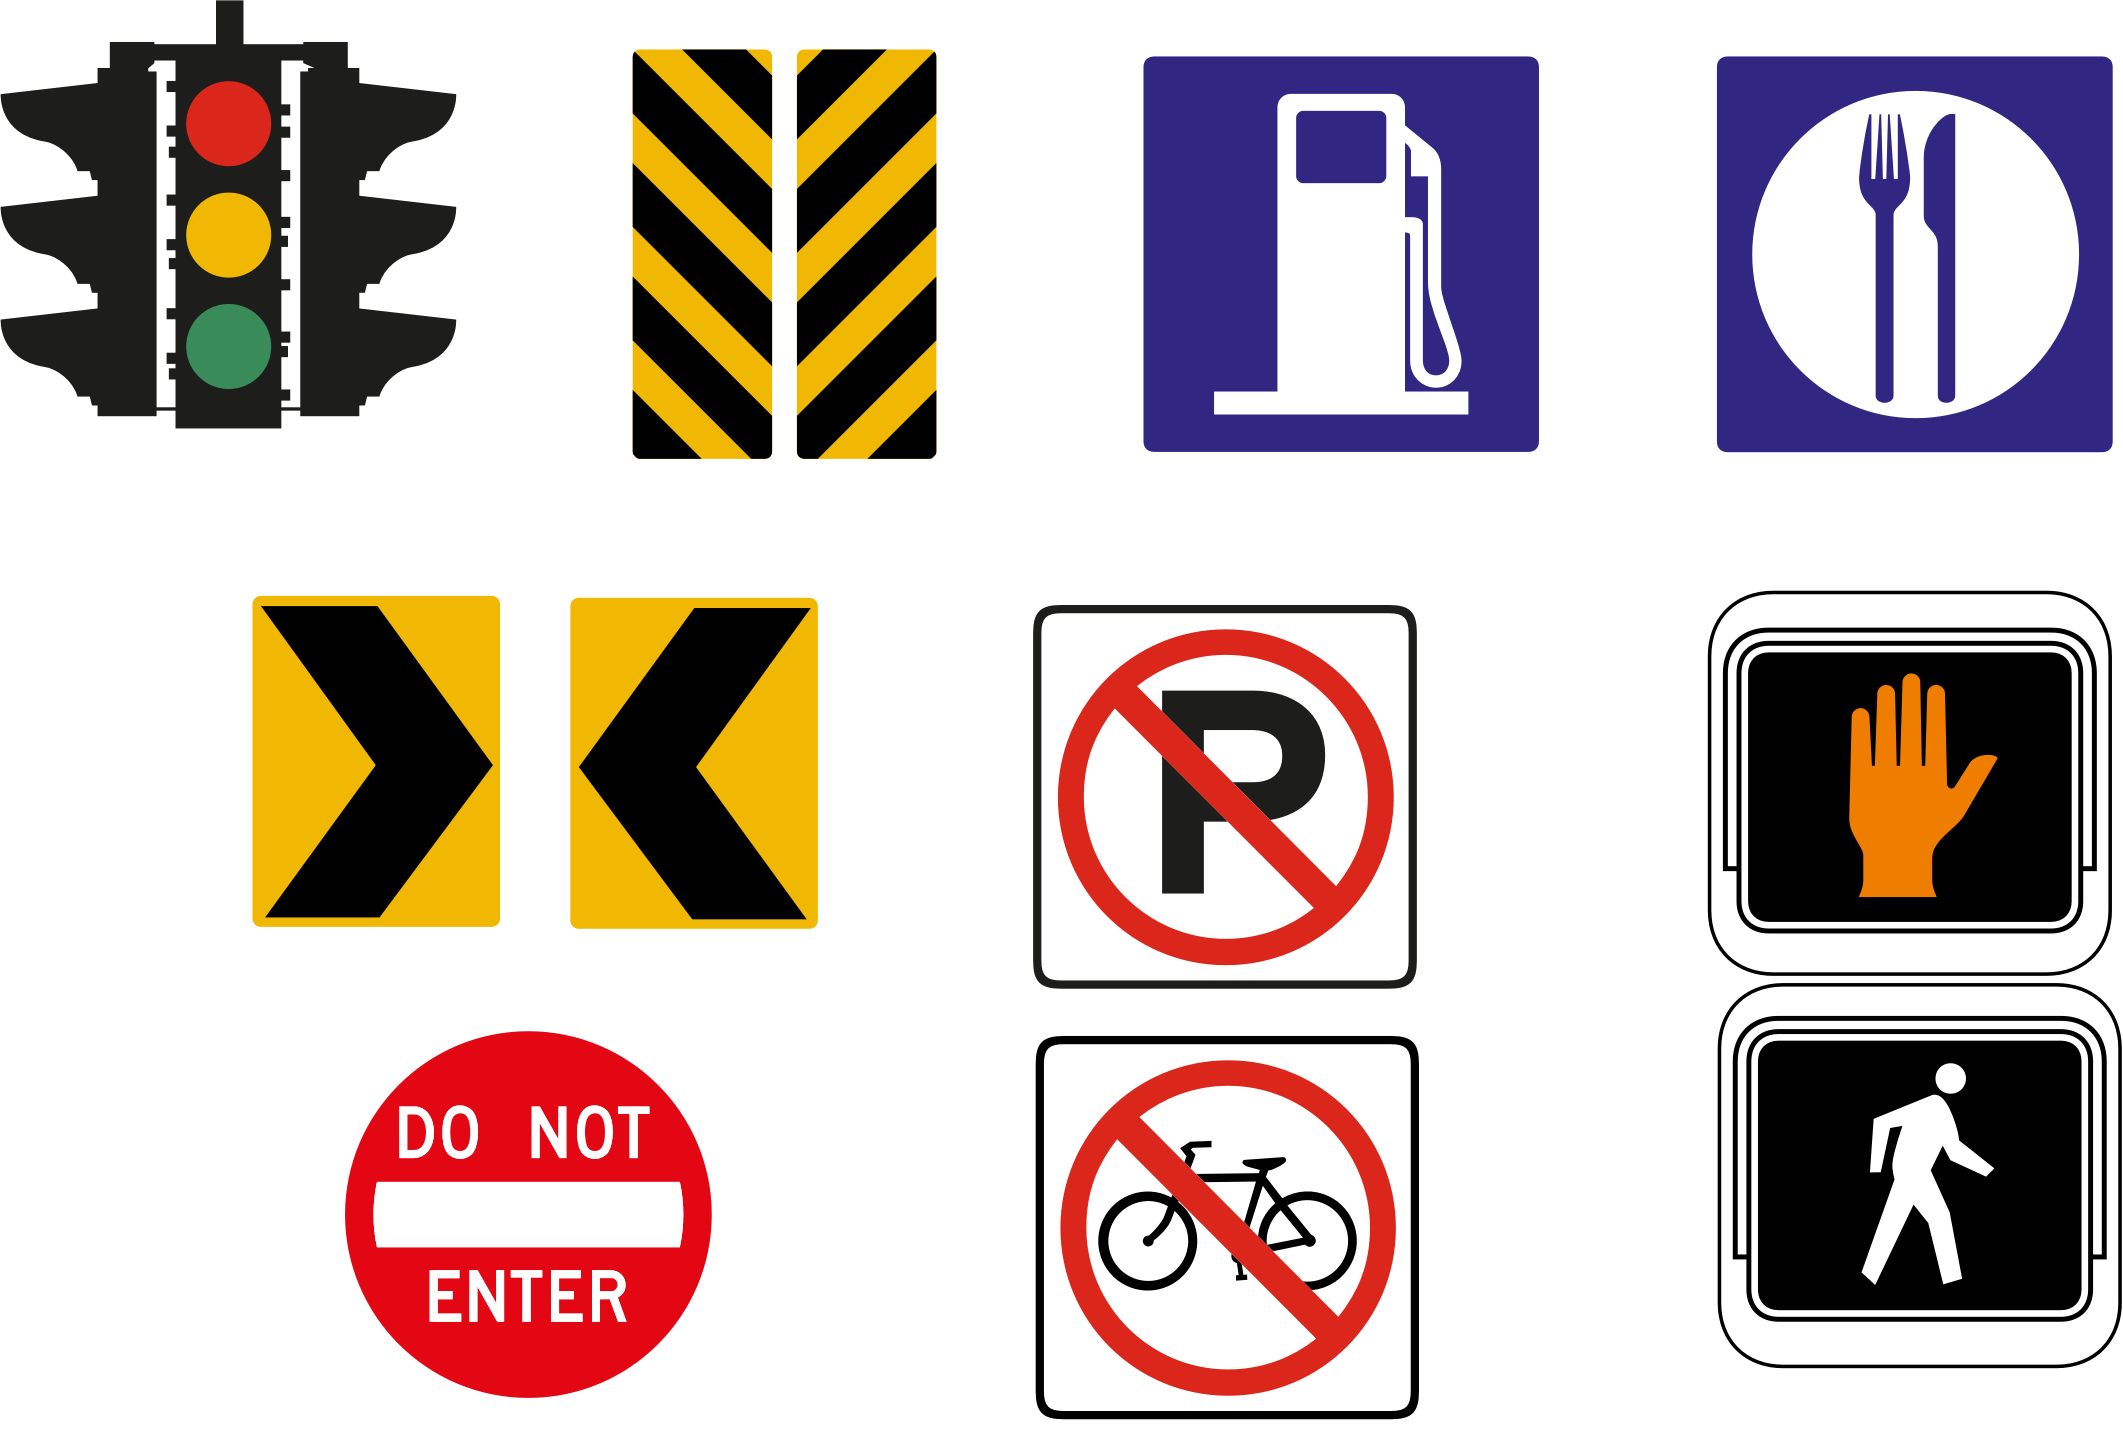 Clipart road road sign. Signs icon set big